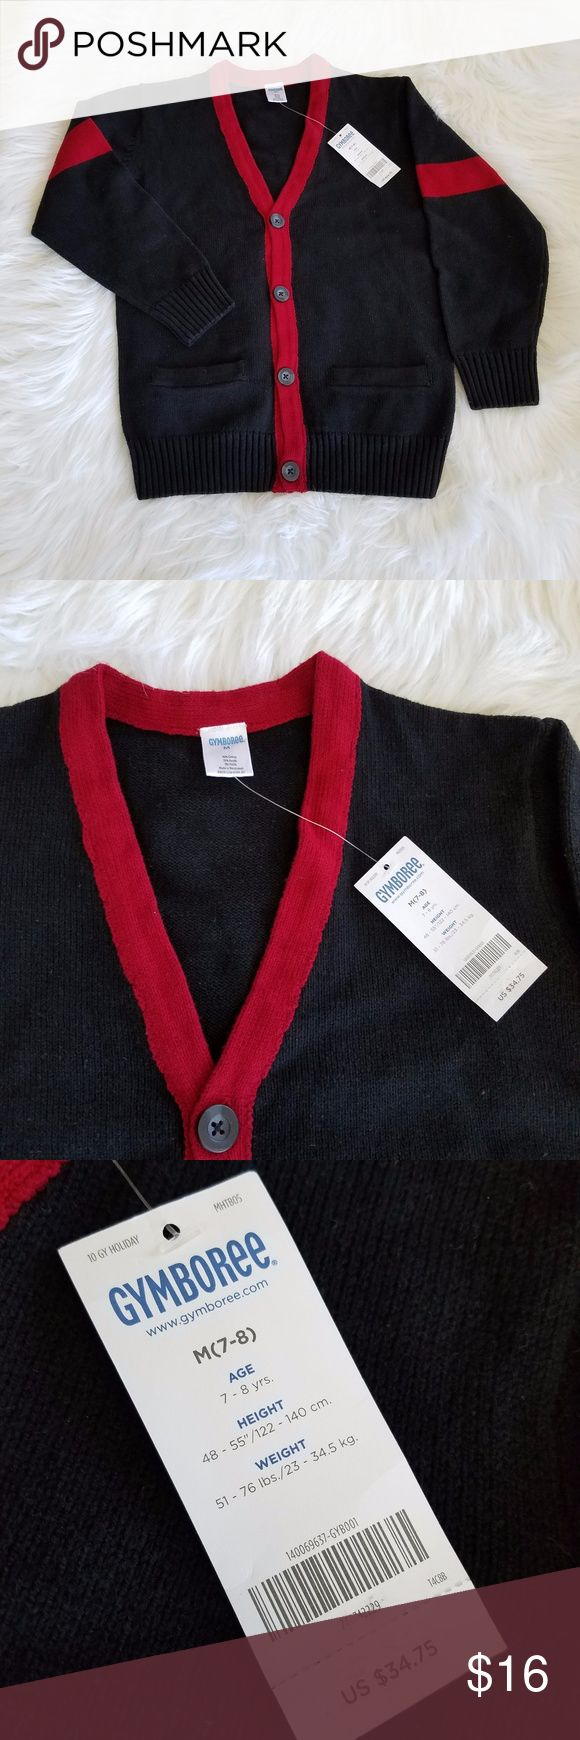 NWT Gymboree Boys Cardigan Sweater Preppy cardigan perfect for the holidays! Size M (7-8) New with Tags! Measurements in photos 20% off bundles of 2 or more SHIPS FAST! Gymboree Shirts & Tops Sweaters